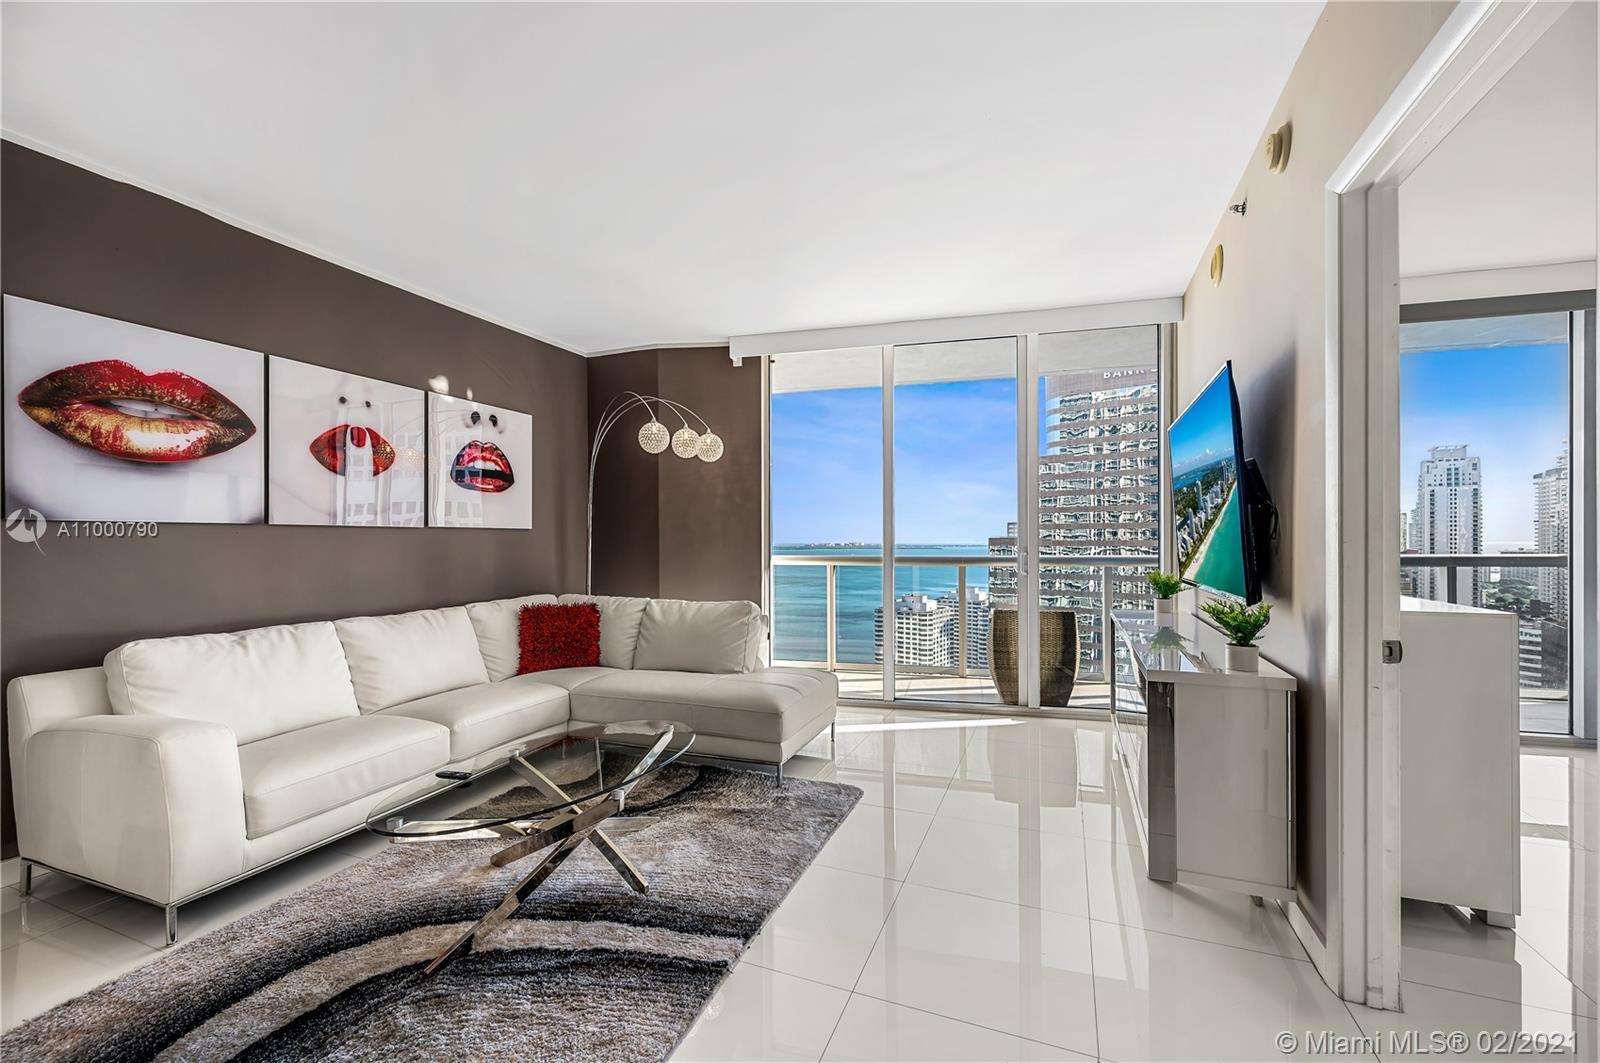 INVESTMENT OPPORTUNITY. This is the largest luxury 2 bed 1 bath in the building this condo has been